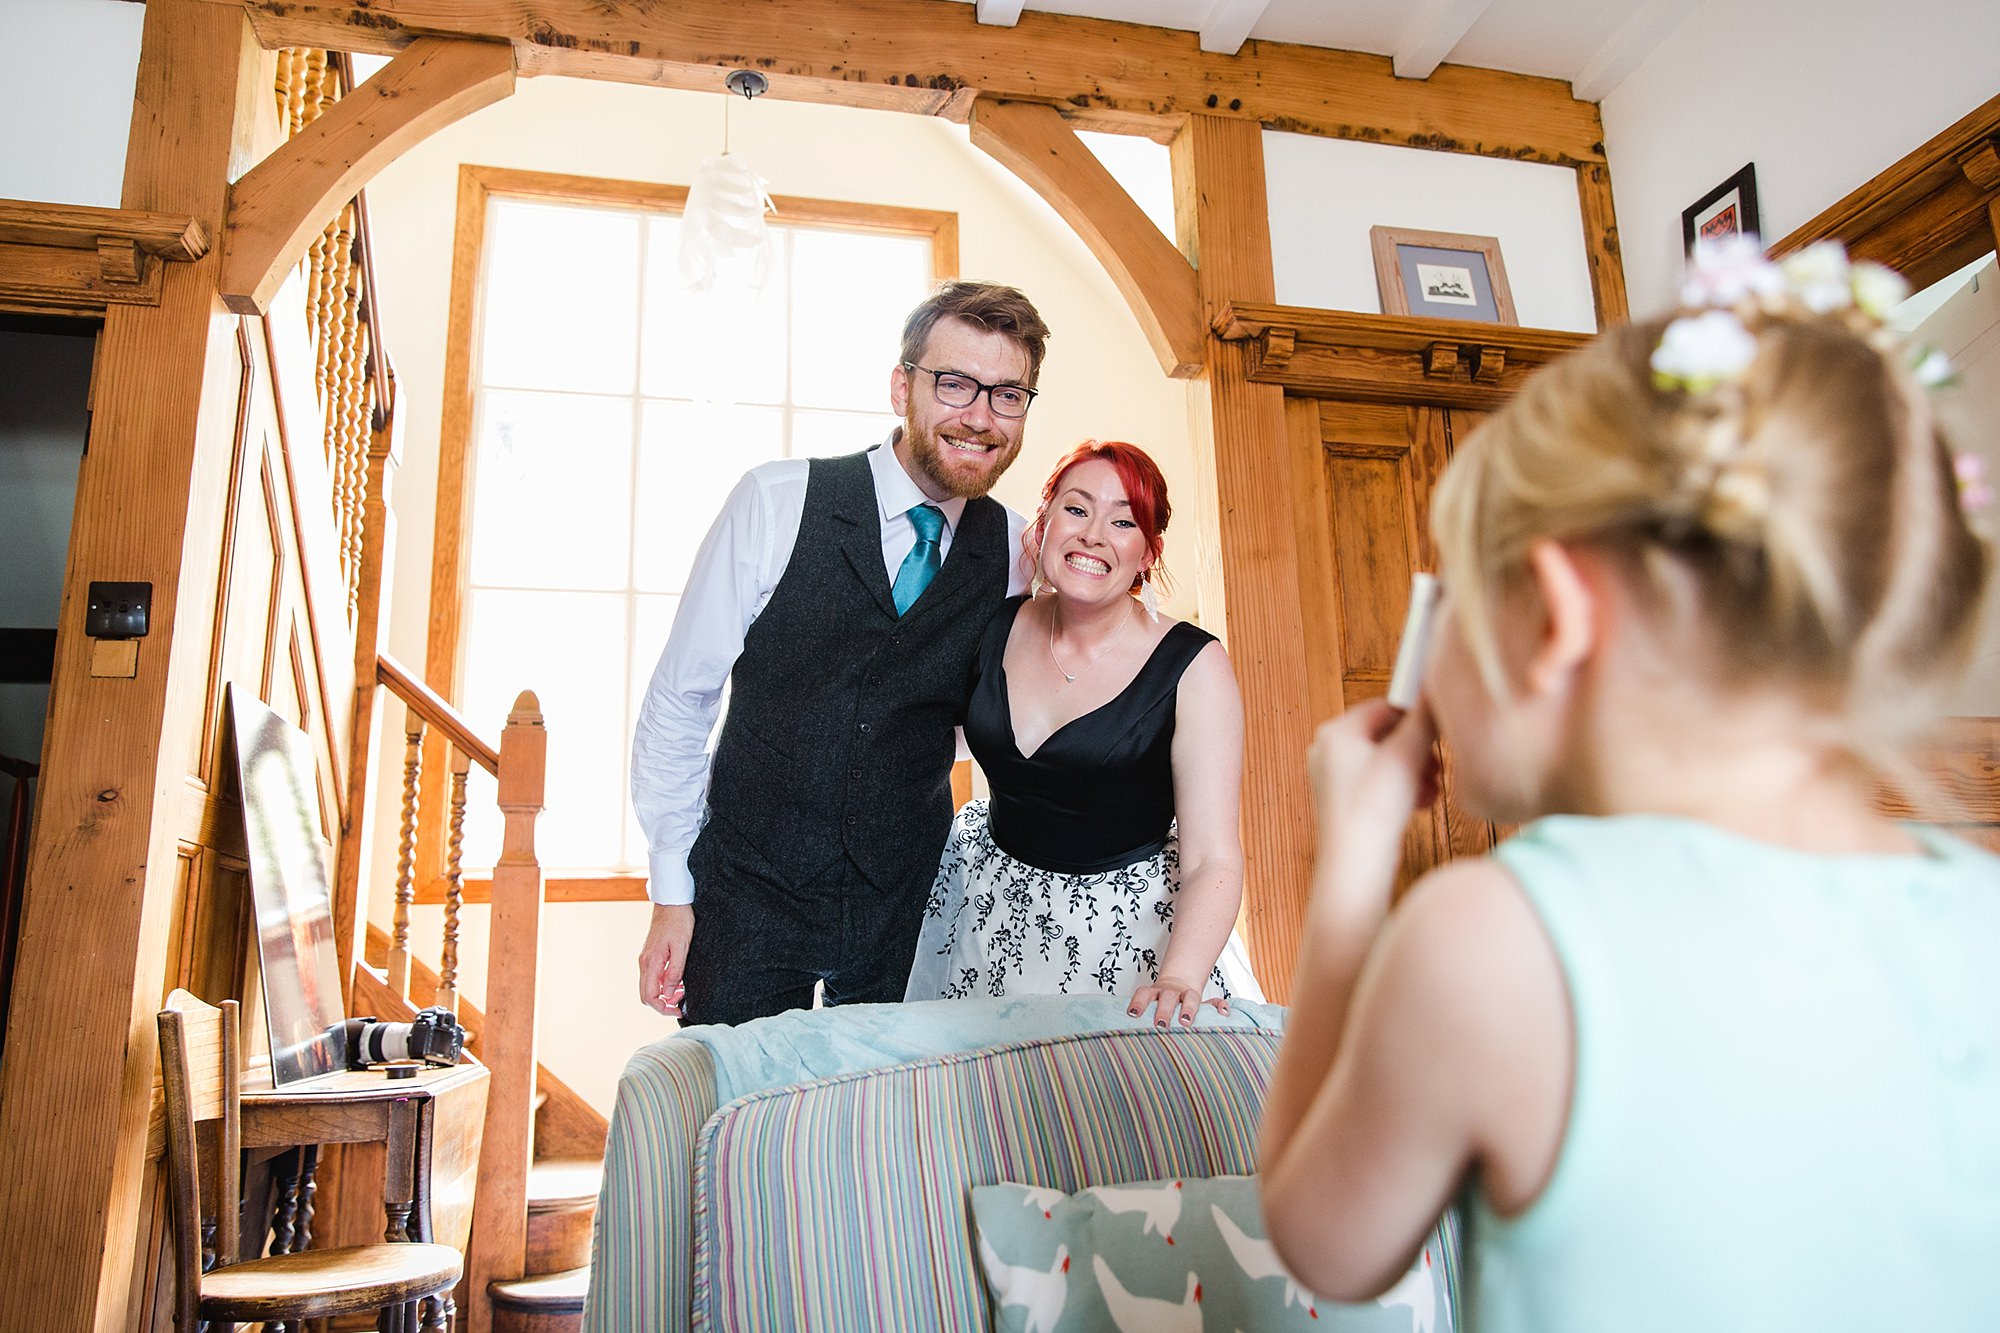 Beacon House wedding a guest takes a picture of the bride and groom